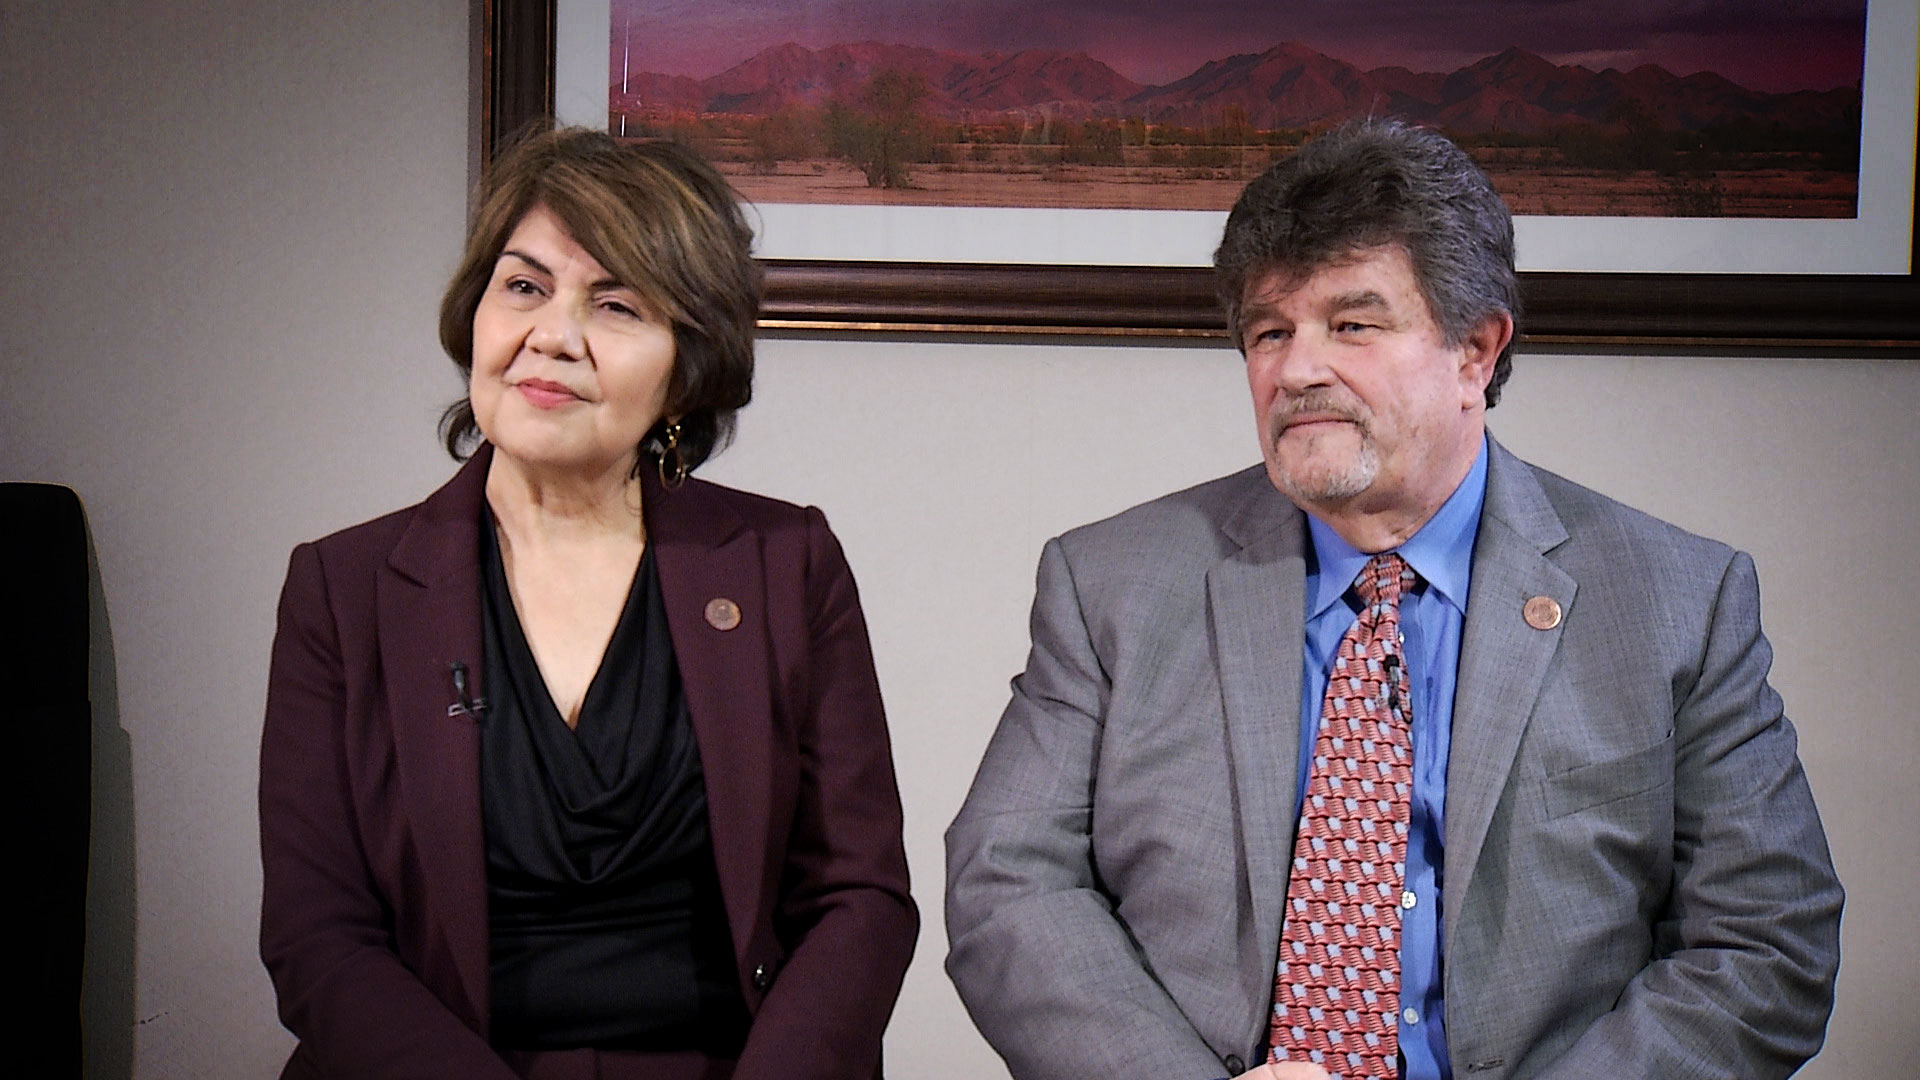 Arizona State Rep. Charlene Fernandez and State Sen. David Bradley sit for an interview at the Arizona Biltmore in Phoenix on Jan. 10, 2020.